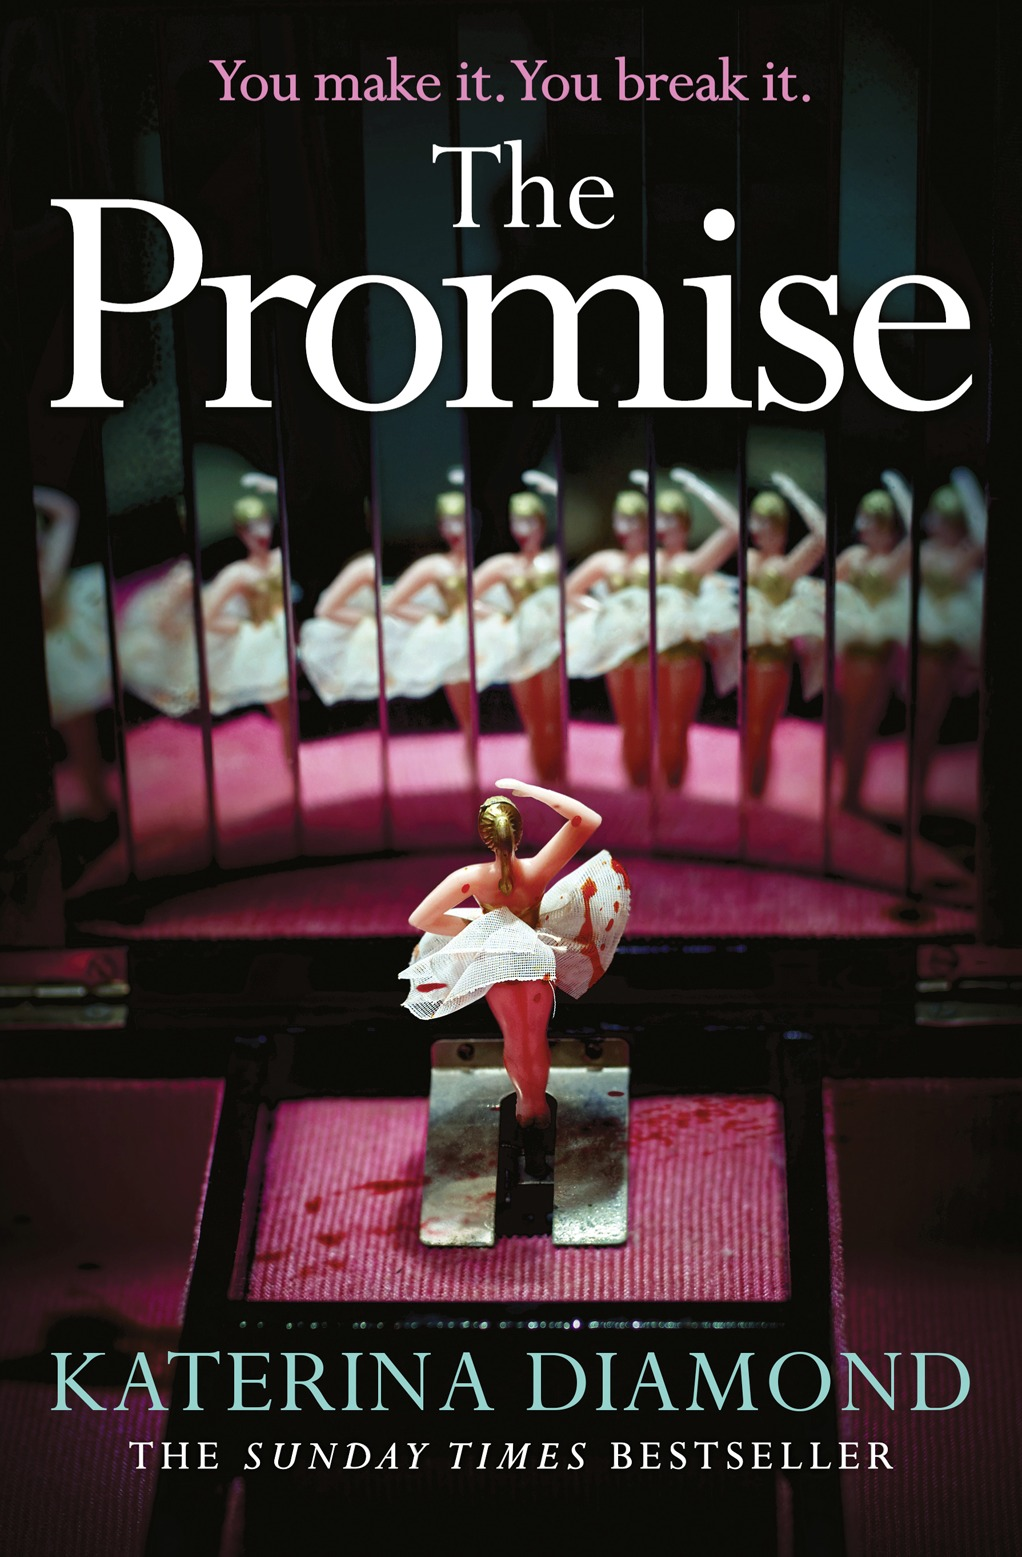 Katerina Diamond The Promise: The twisty new thriller from the Sunday Times bestseller, guaranteed to keep you up all night thor brad apostle ny times bestseller